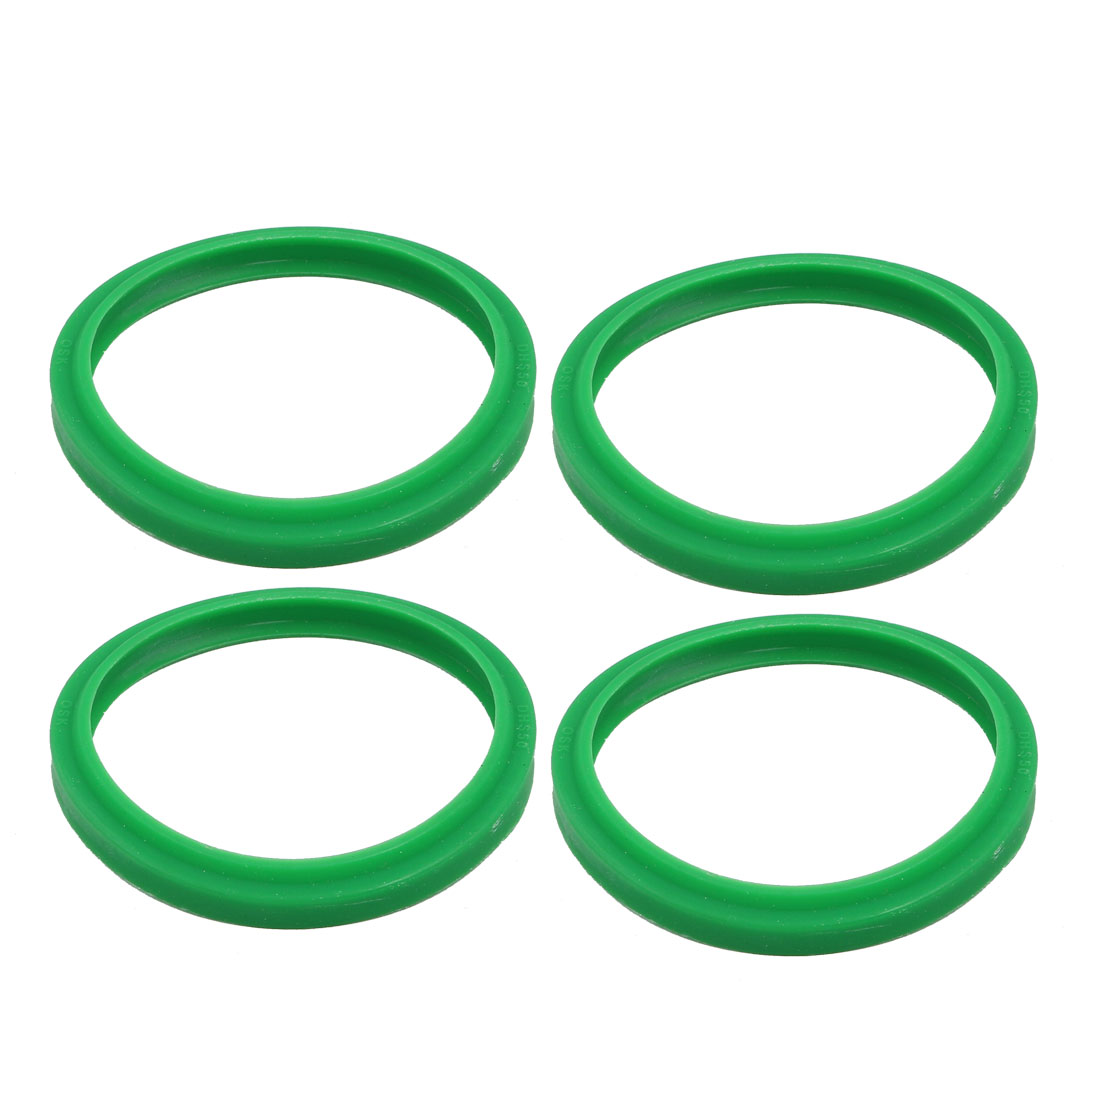 4pcs 58mmx50mmx6.5mm Rubber Dustproof Air Seal Gaskets Green